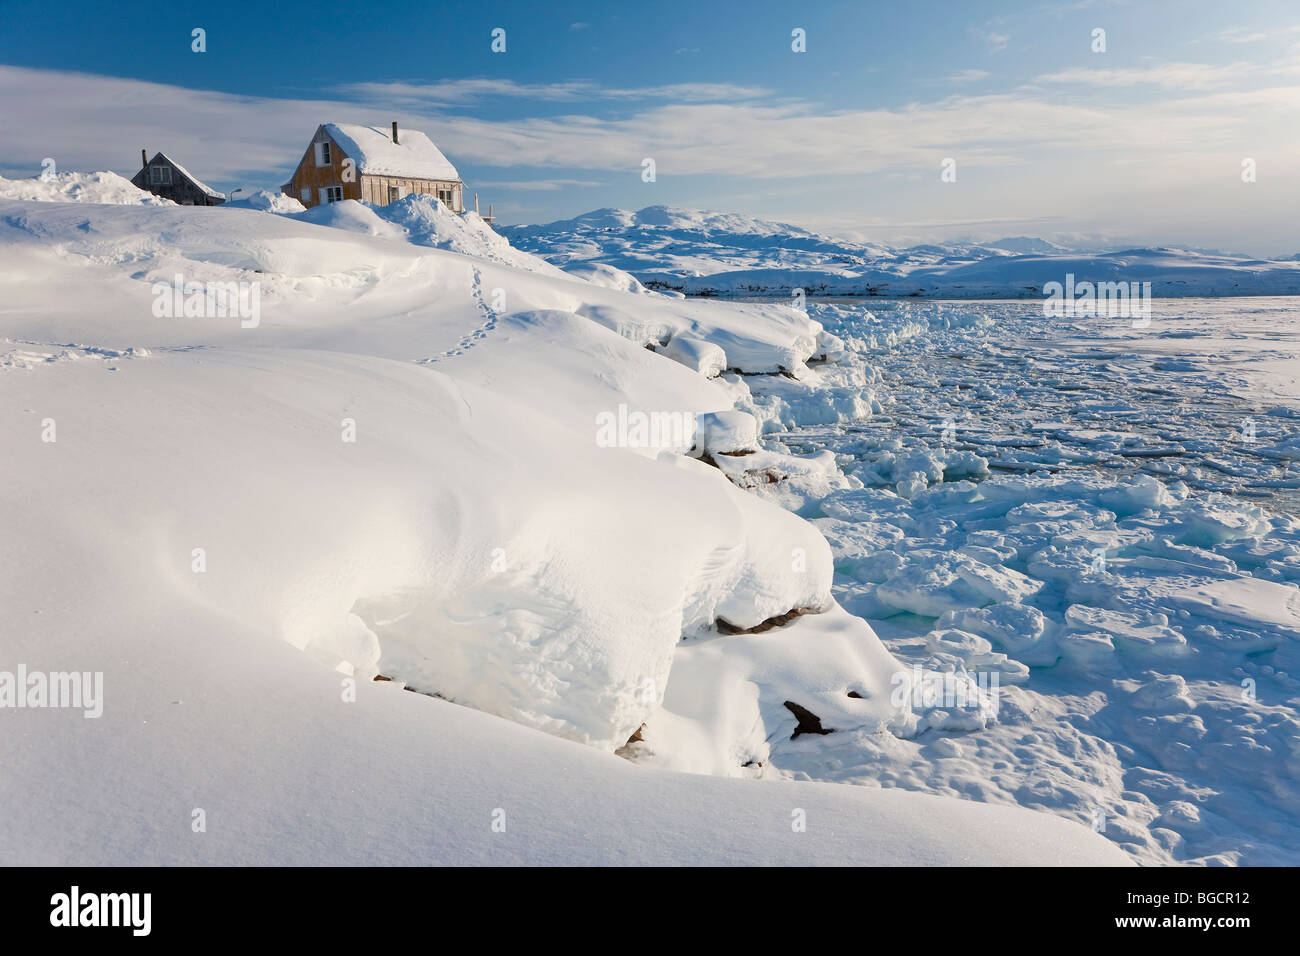 House on edge of fjord, Tiniteqilaq, Greenland - Stock Image